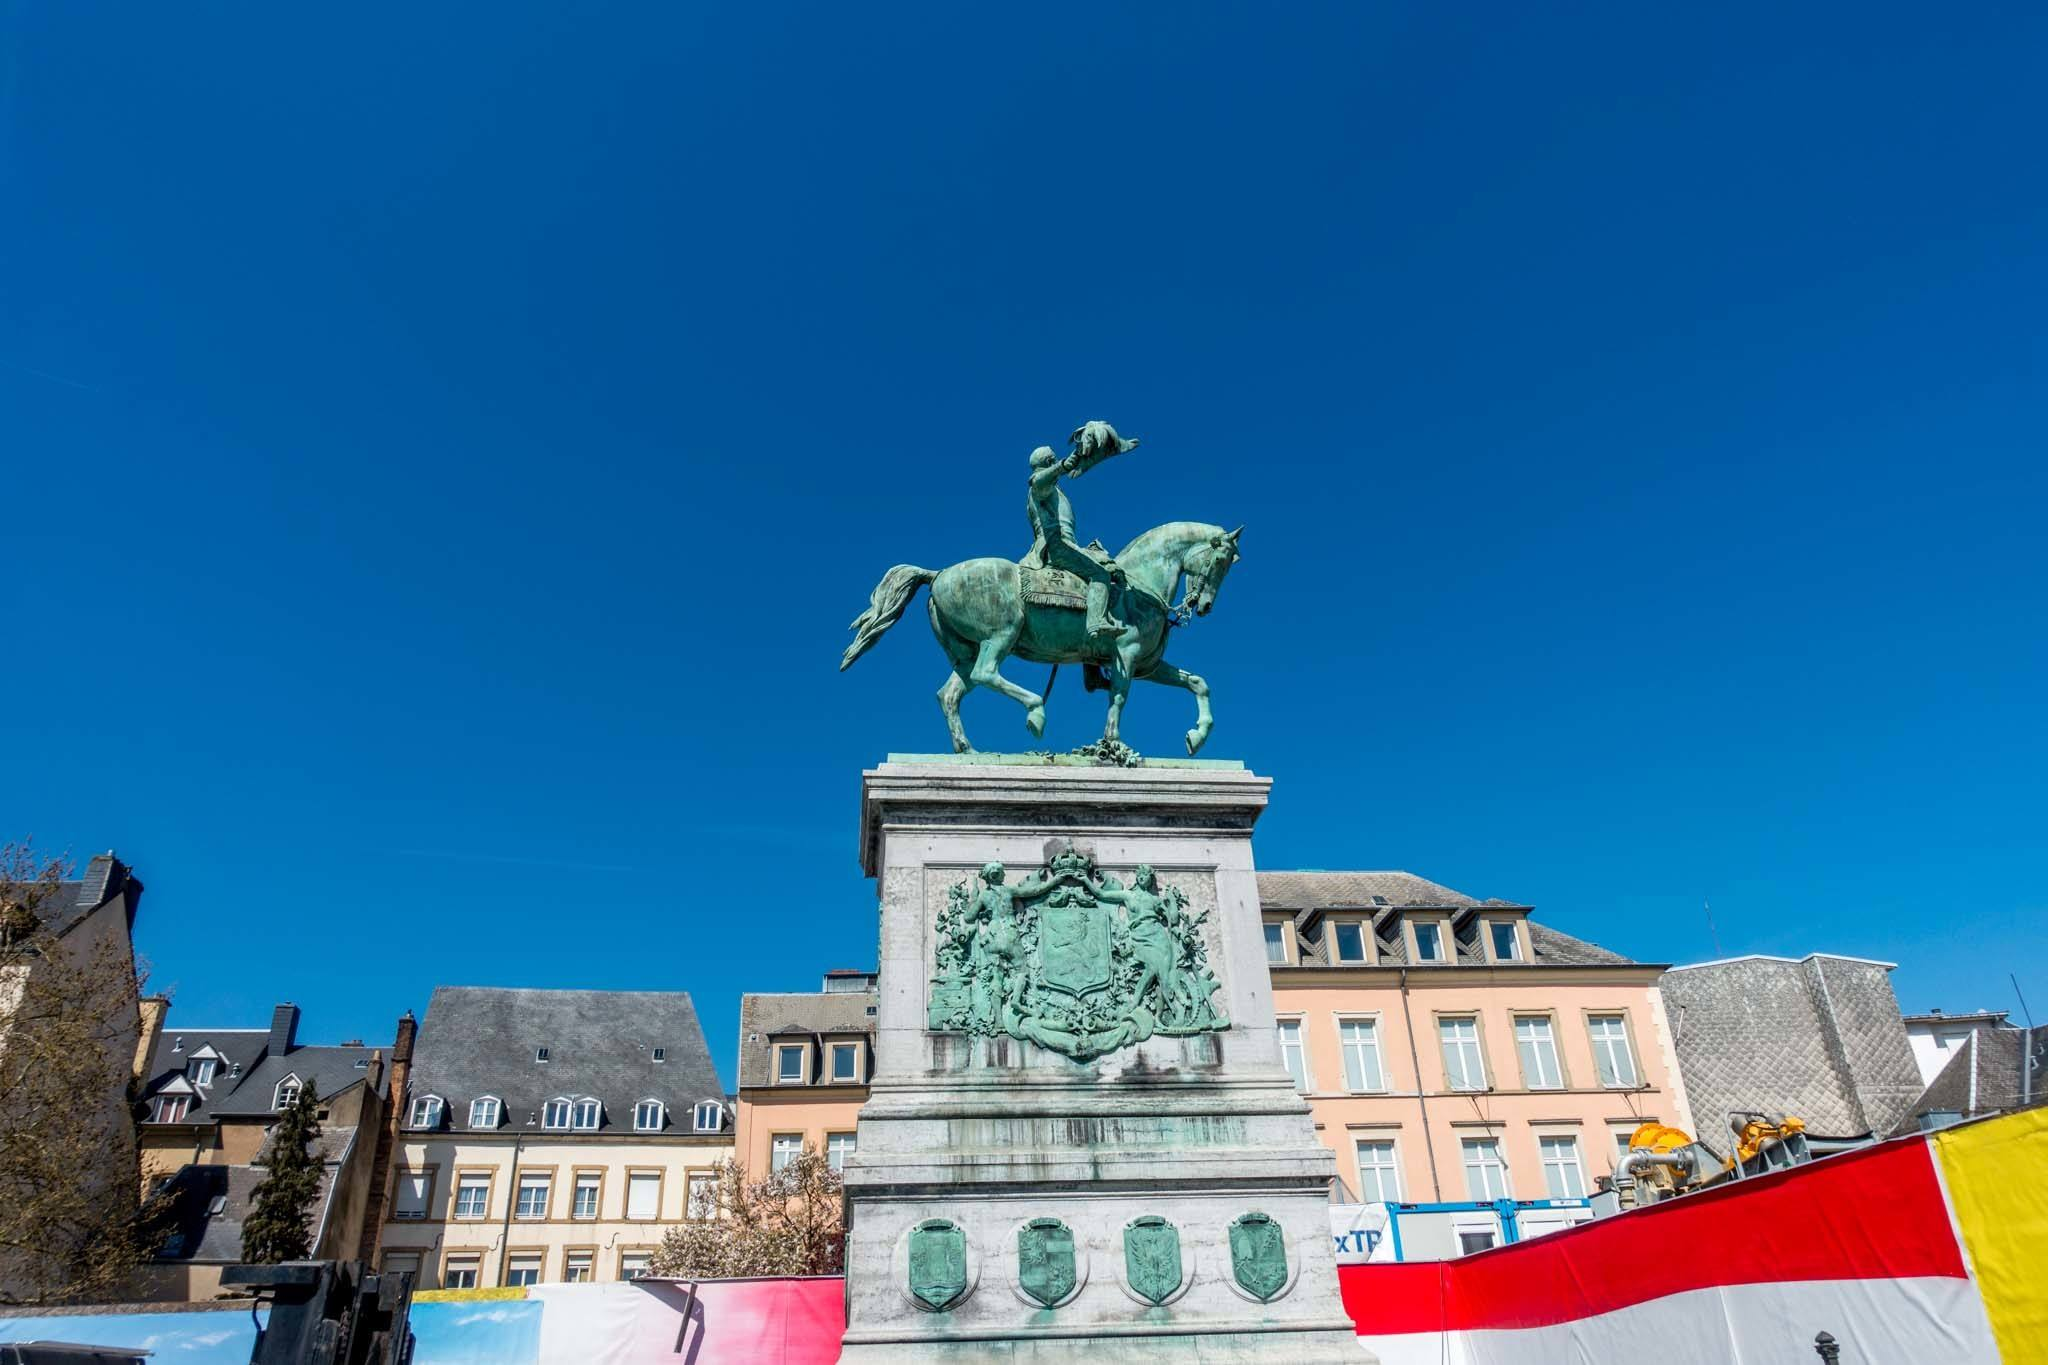 One of the Luxembourg sights, Place Guillaume II hosts markets and concerts in the heart of Luxembourg City